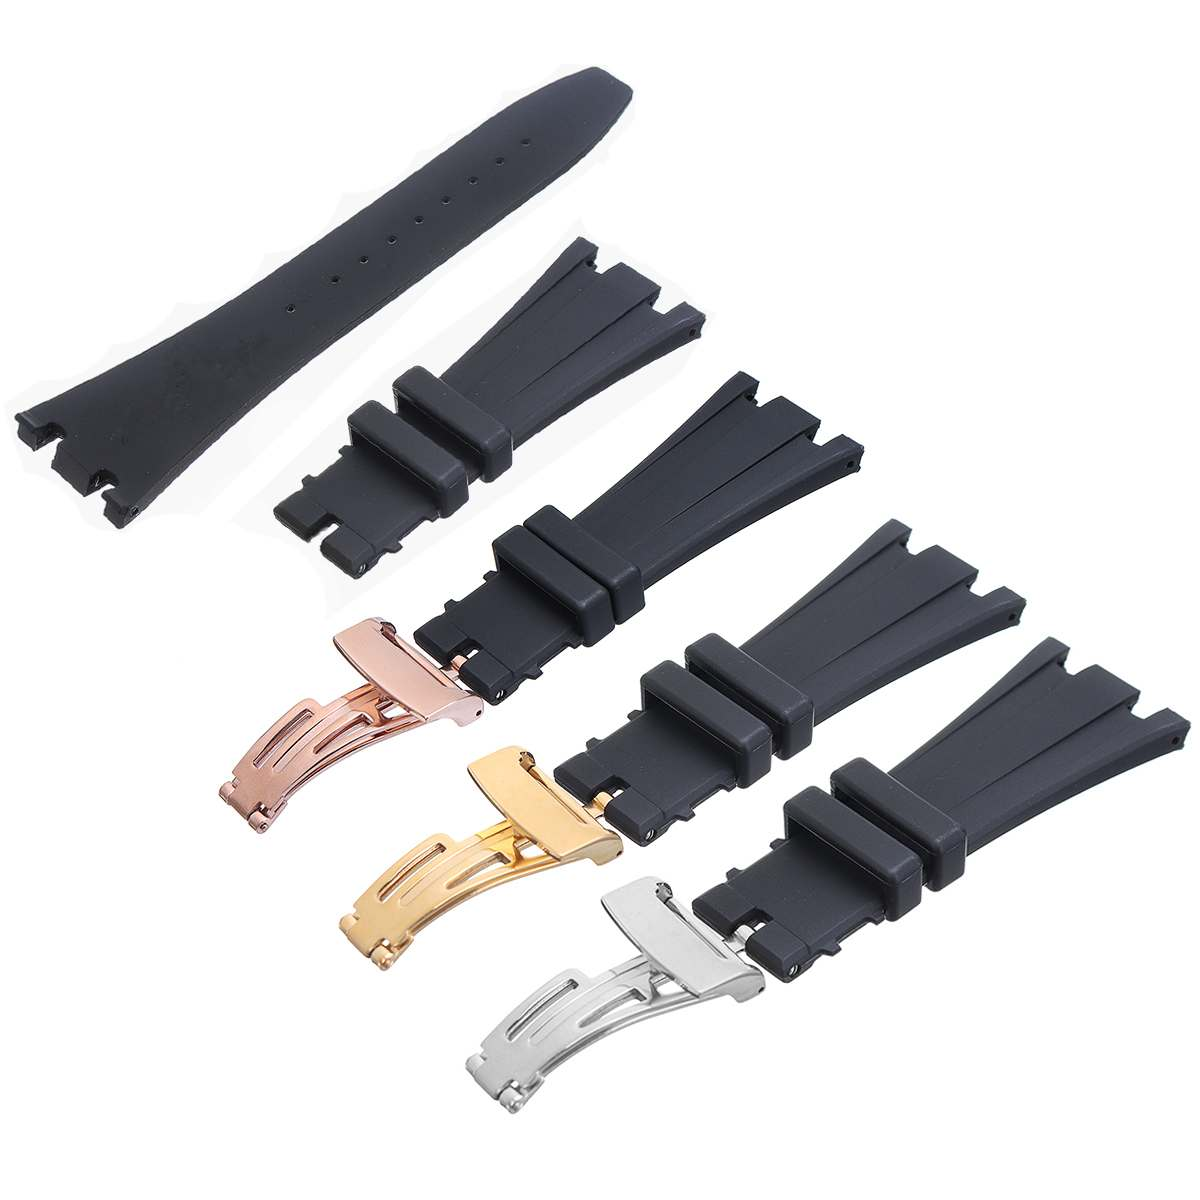 28mm Width Silicone Watch Strap Replacement Repair Watch Strap Belt Accessories For AUDEMARS PIGUET ROYAL OAK OFFSHORE